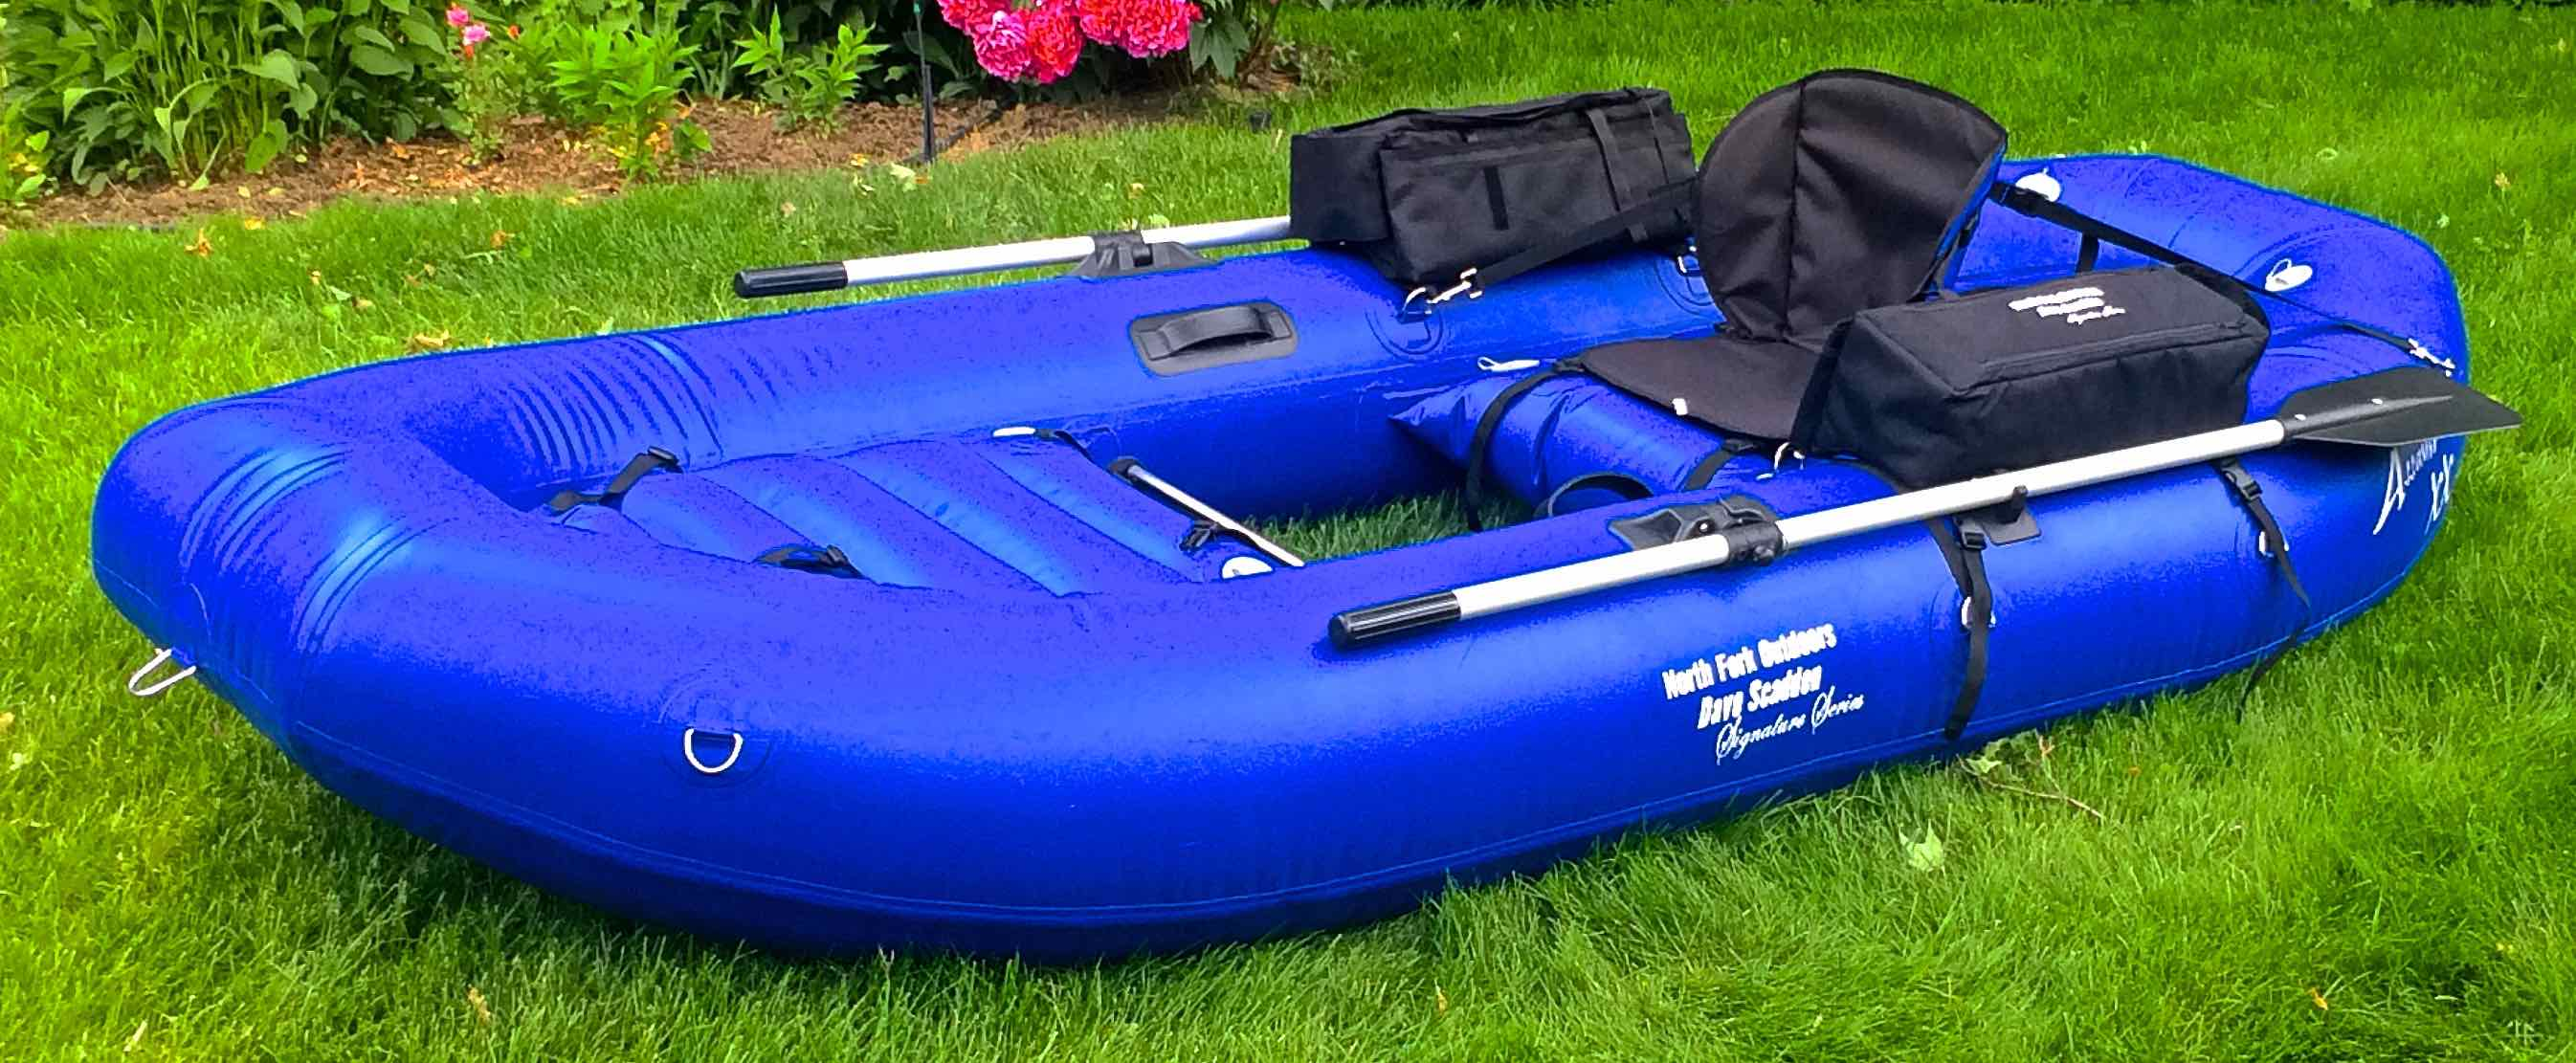 Dave scadden inflatable pontoon style boats for Inflatable pontoon fishing boat